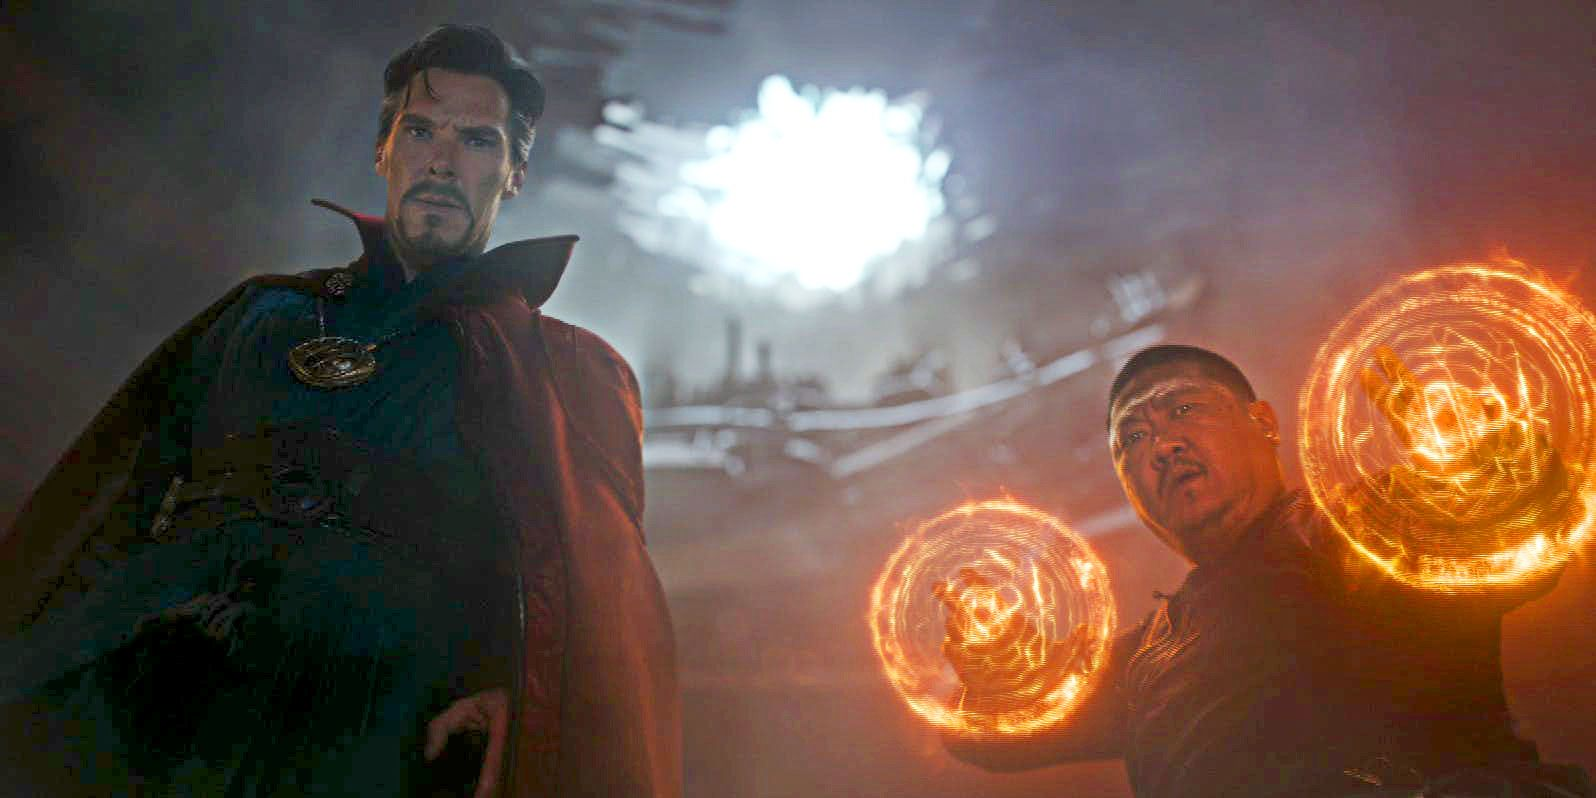 An Infinity Gauntlet Scene Is Brought To Life In Avengers